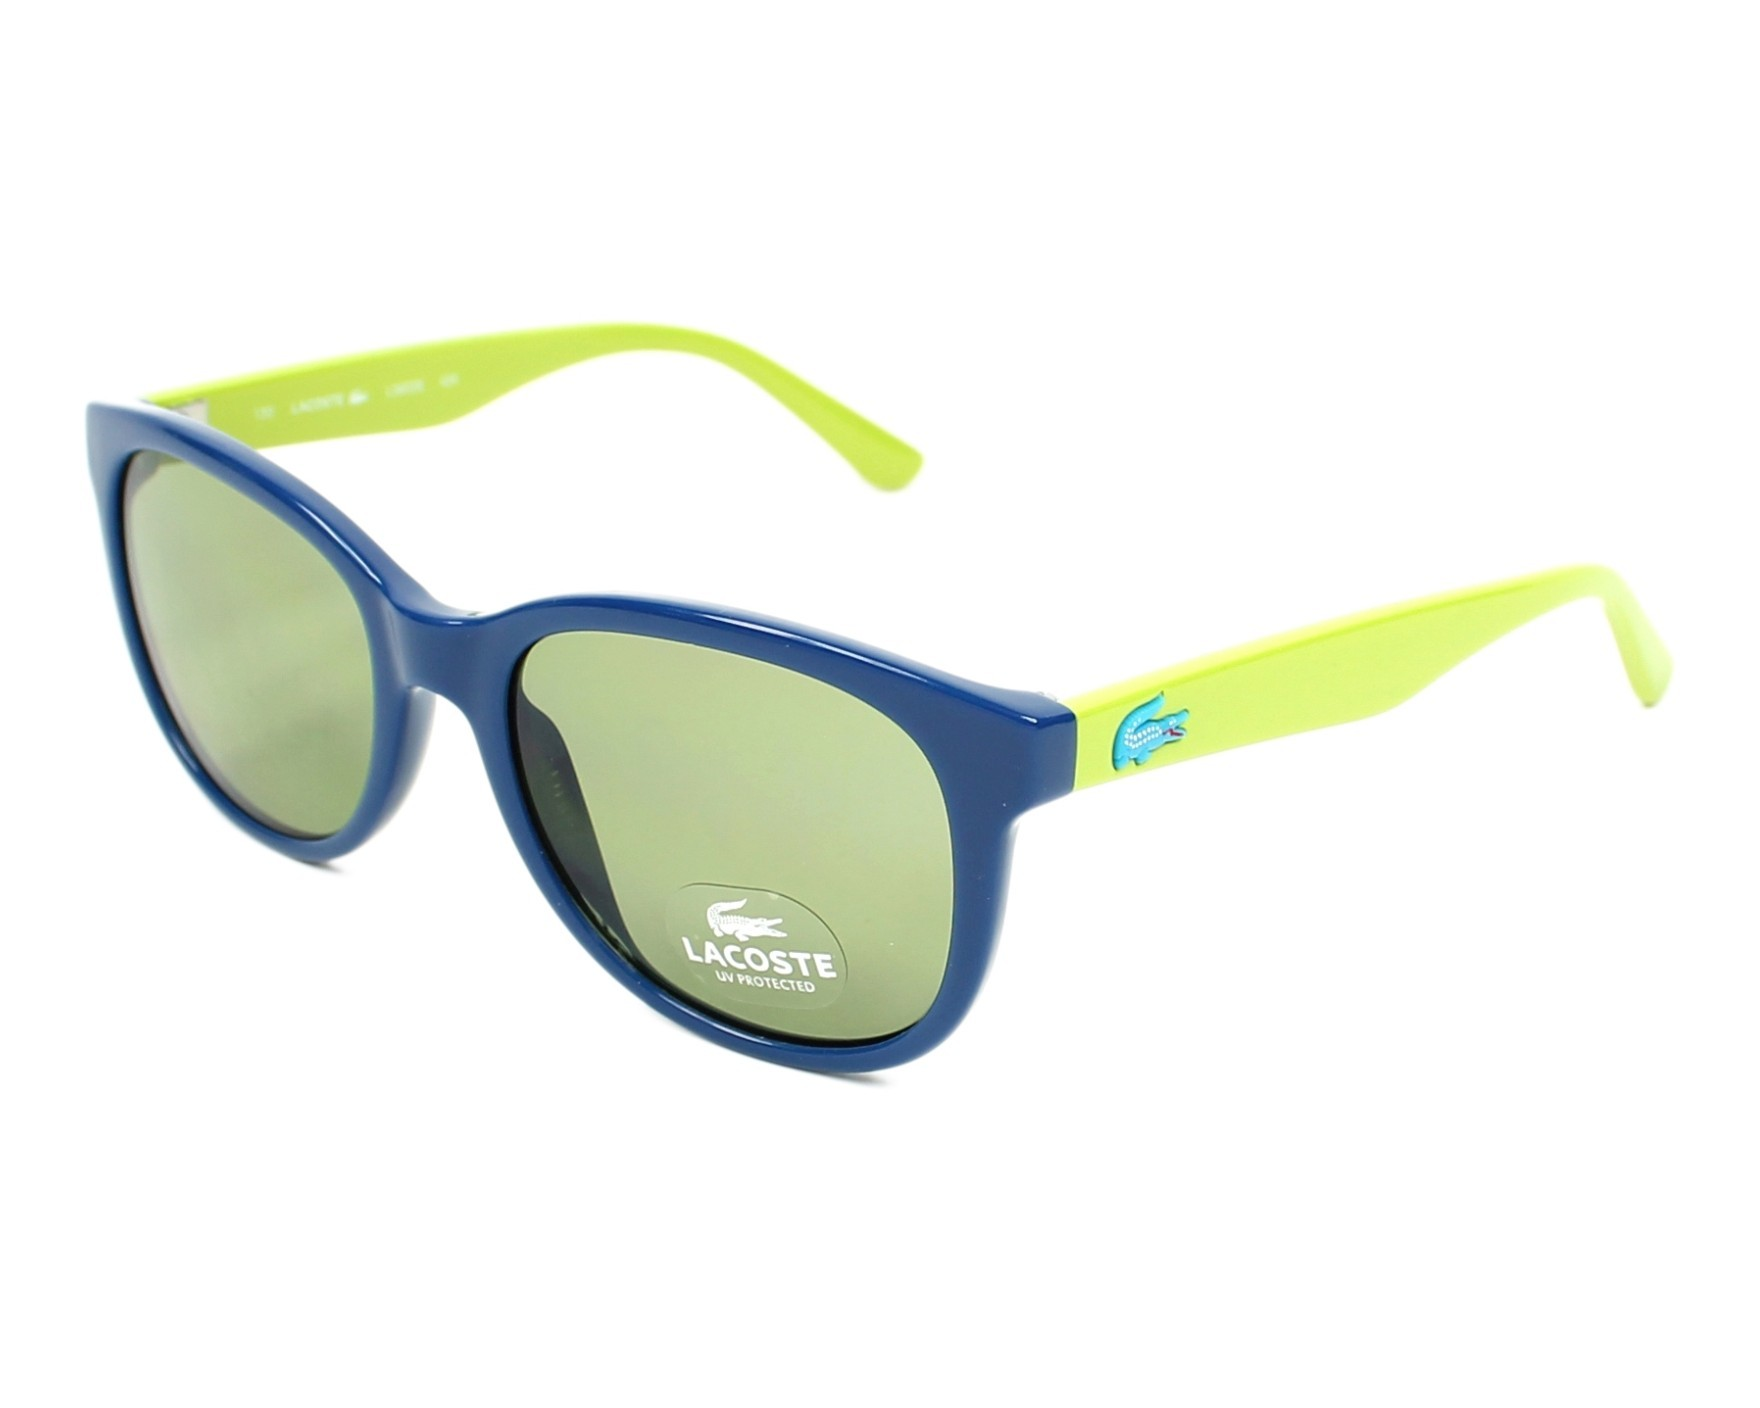 Lacoste Sunglasses L-3603-S 424 Blue